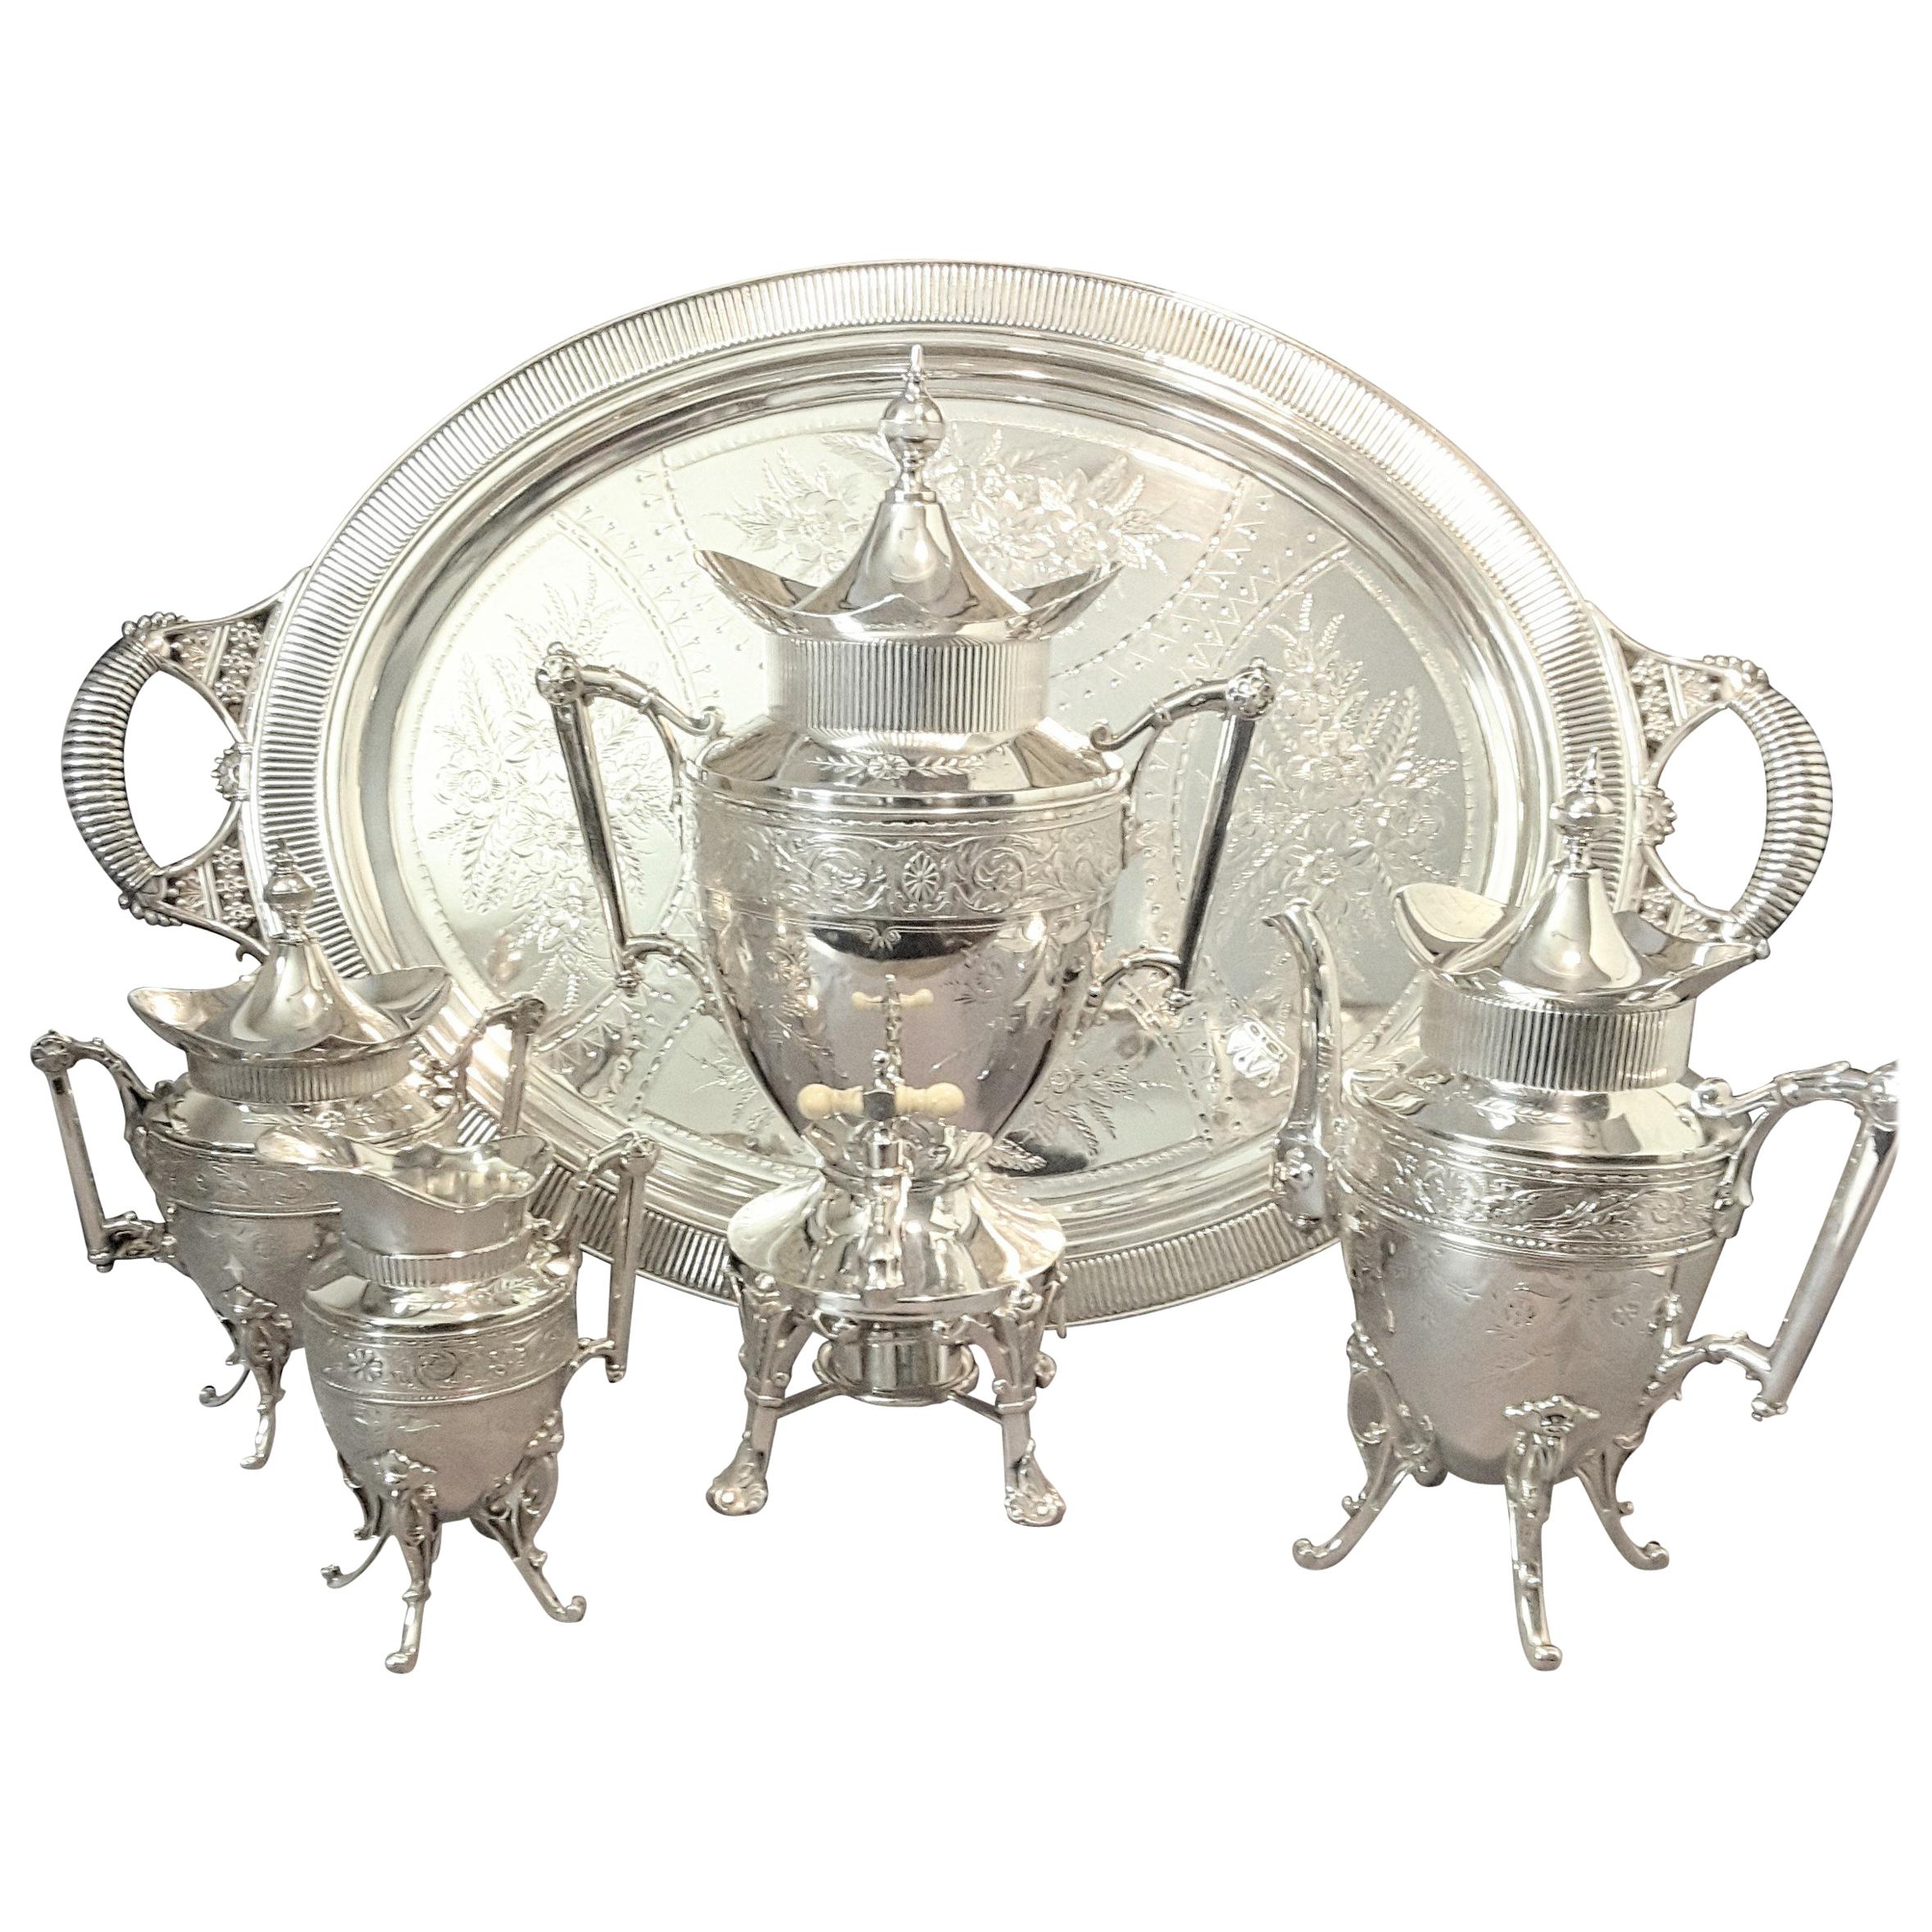 Exquisite Aesthetic Movement Silverplated Tea Service by Simpson, Hall & Miller